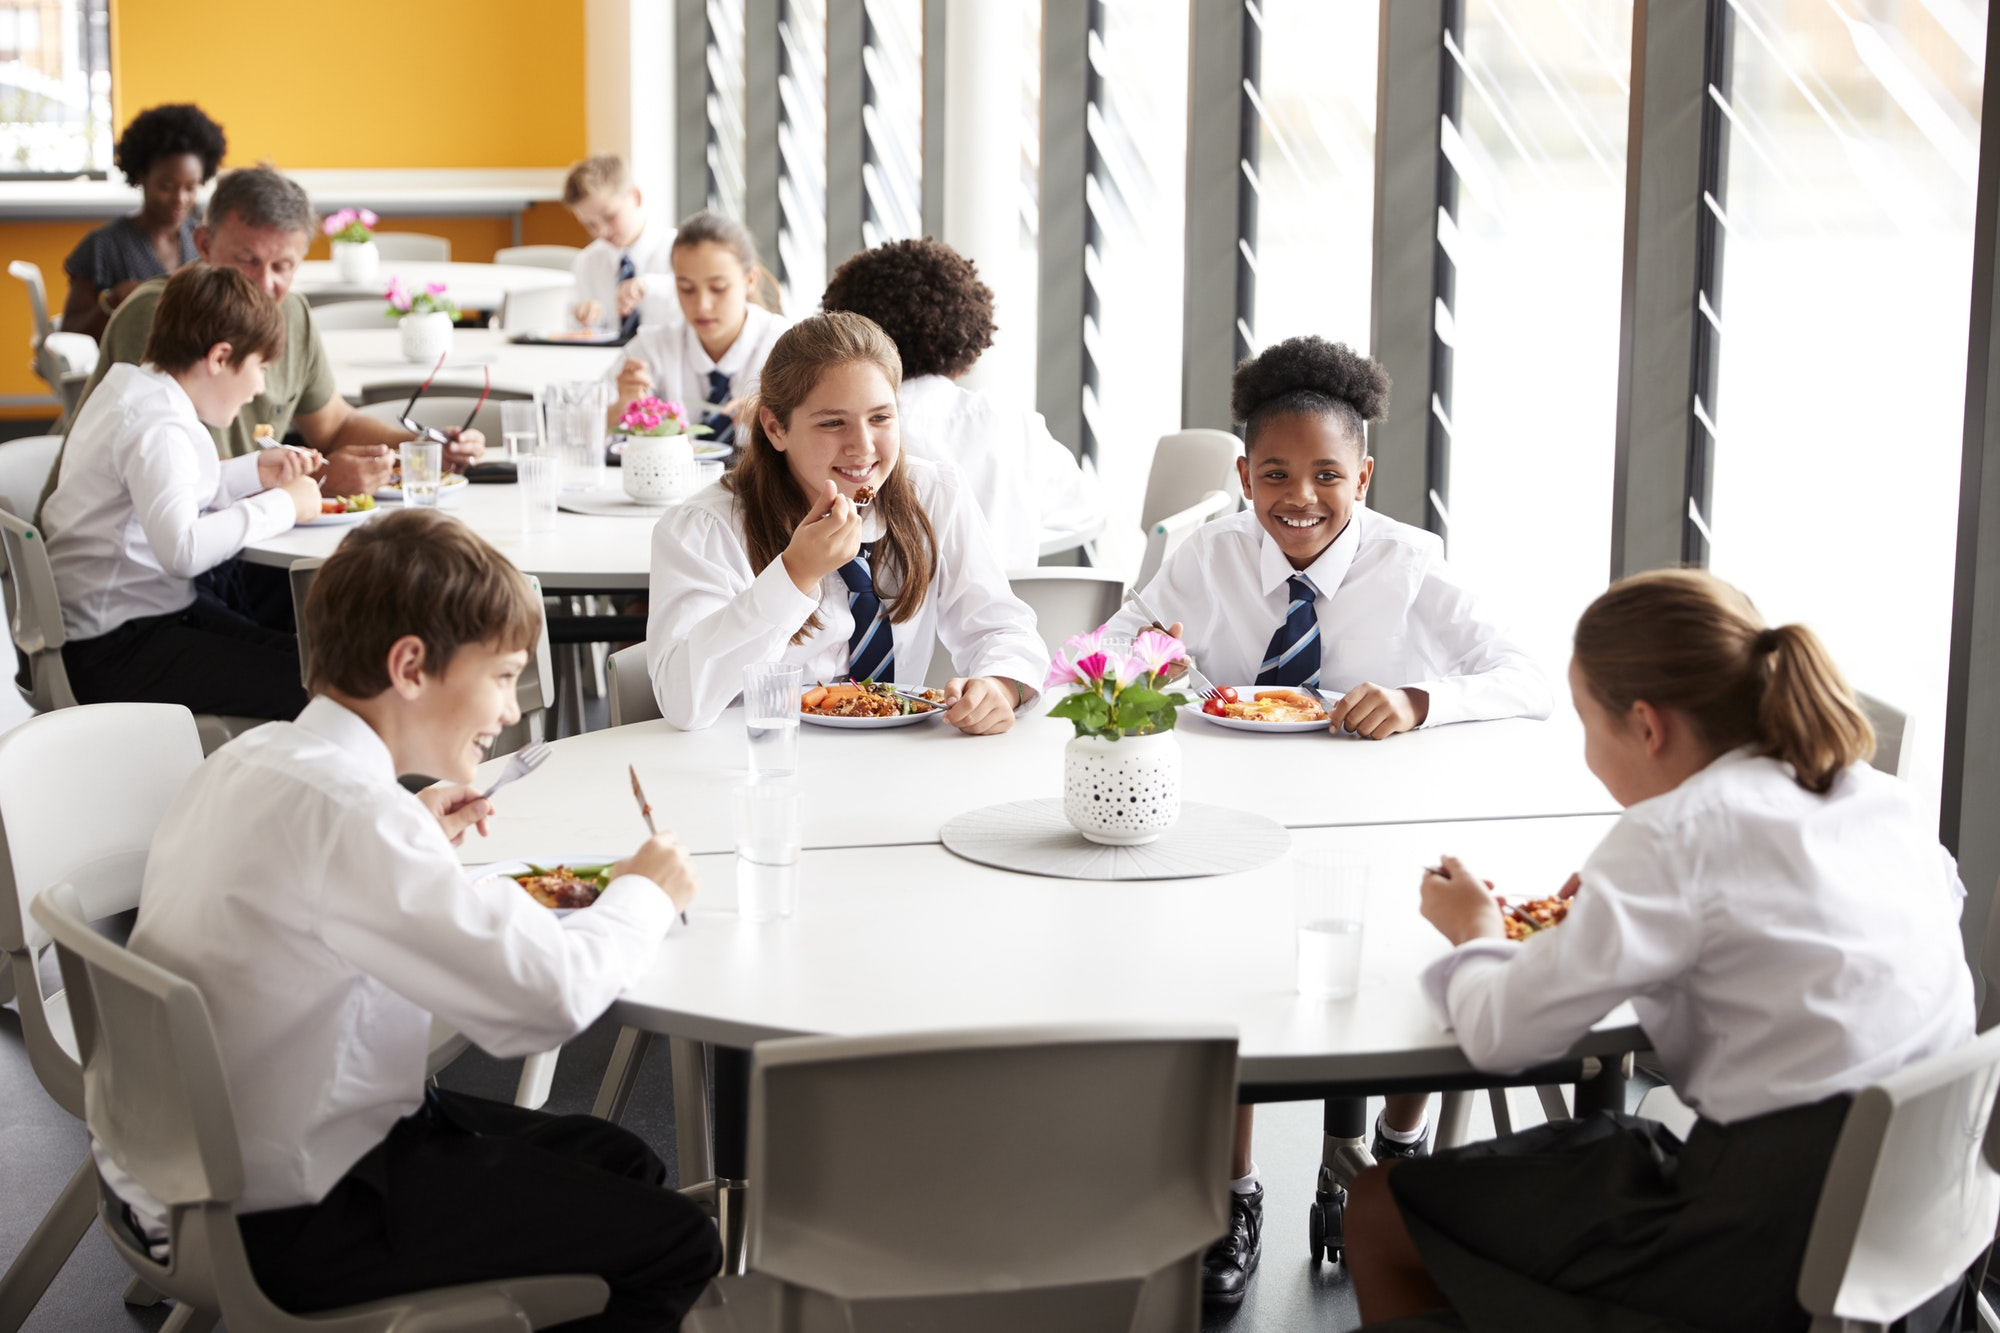 Group Of High School Students Wearing Uniform Sitting Around Table And Eating Lunch In Cafeteria